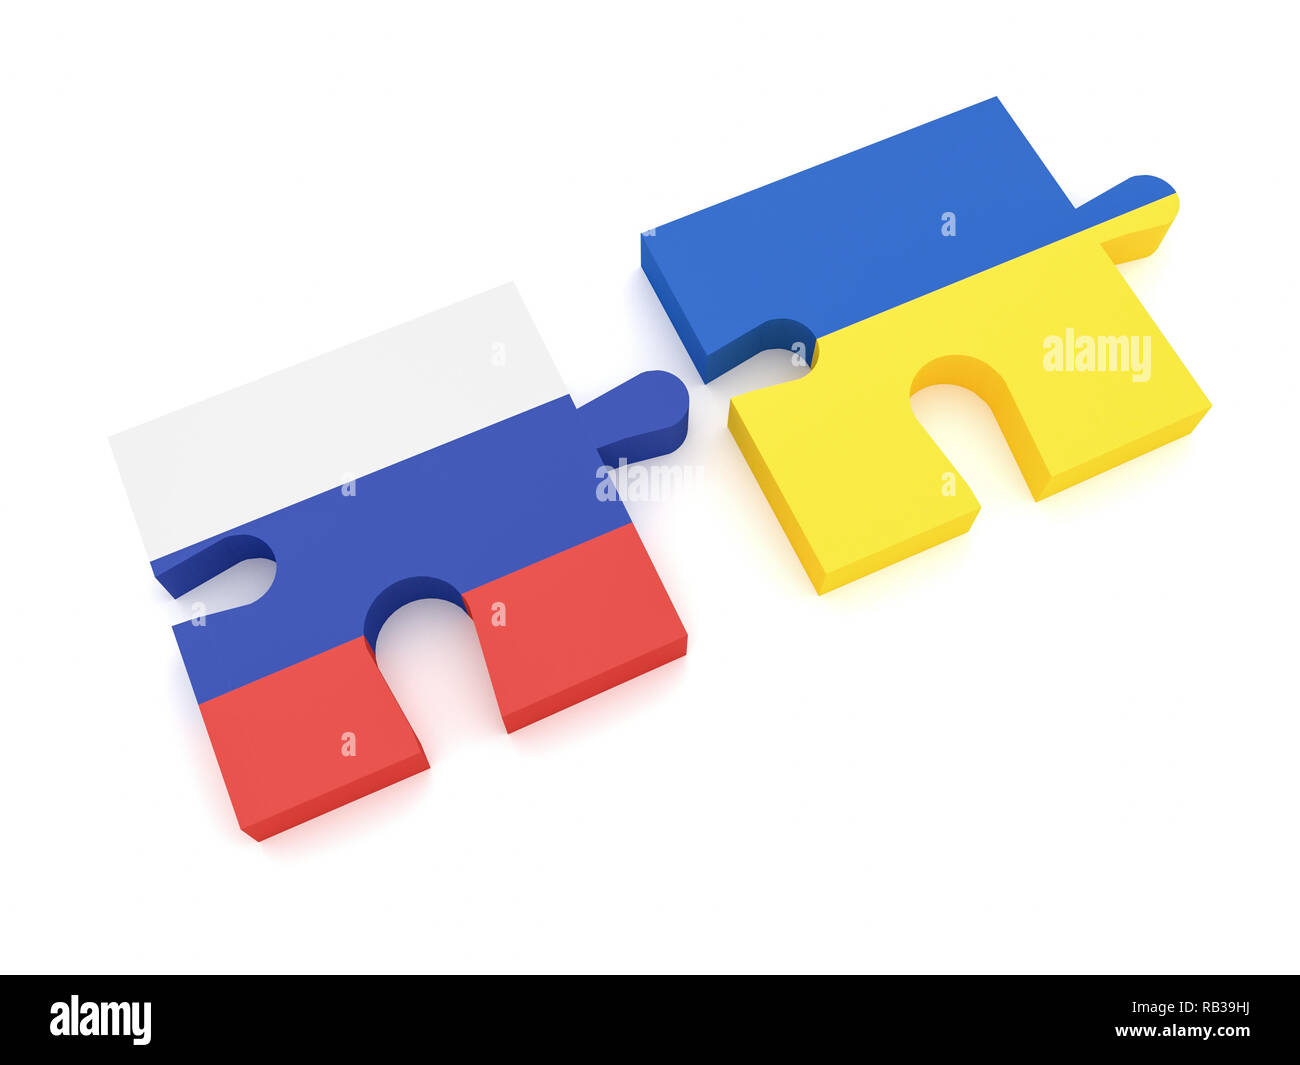 Russia And Ukraine: Russian Flag And Ukrainian Flag Puzzle Pieces, 3d illustration on white background - Stock Image